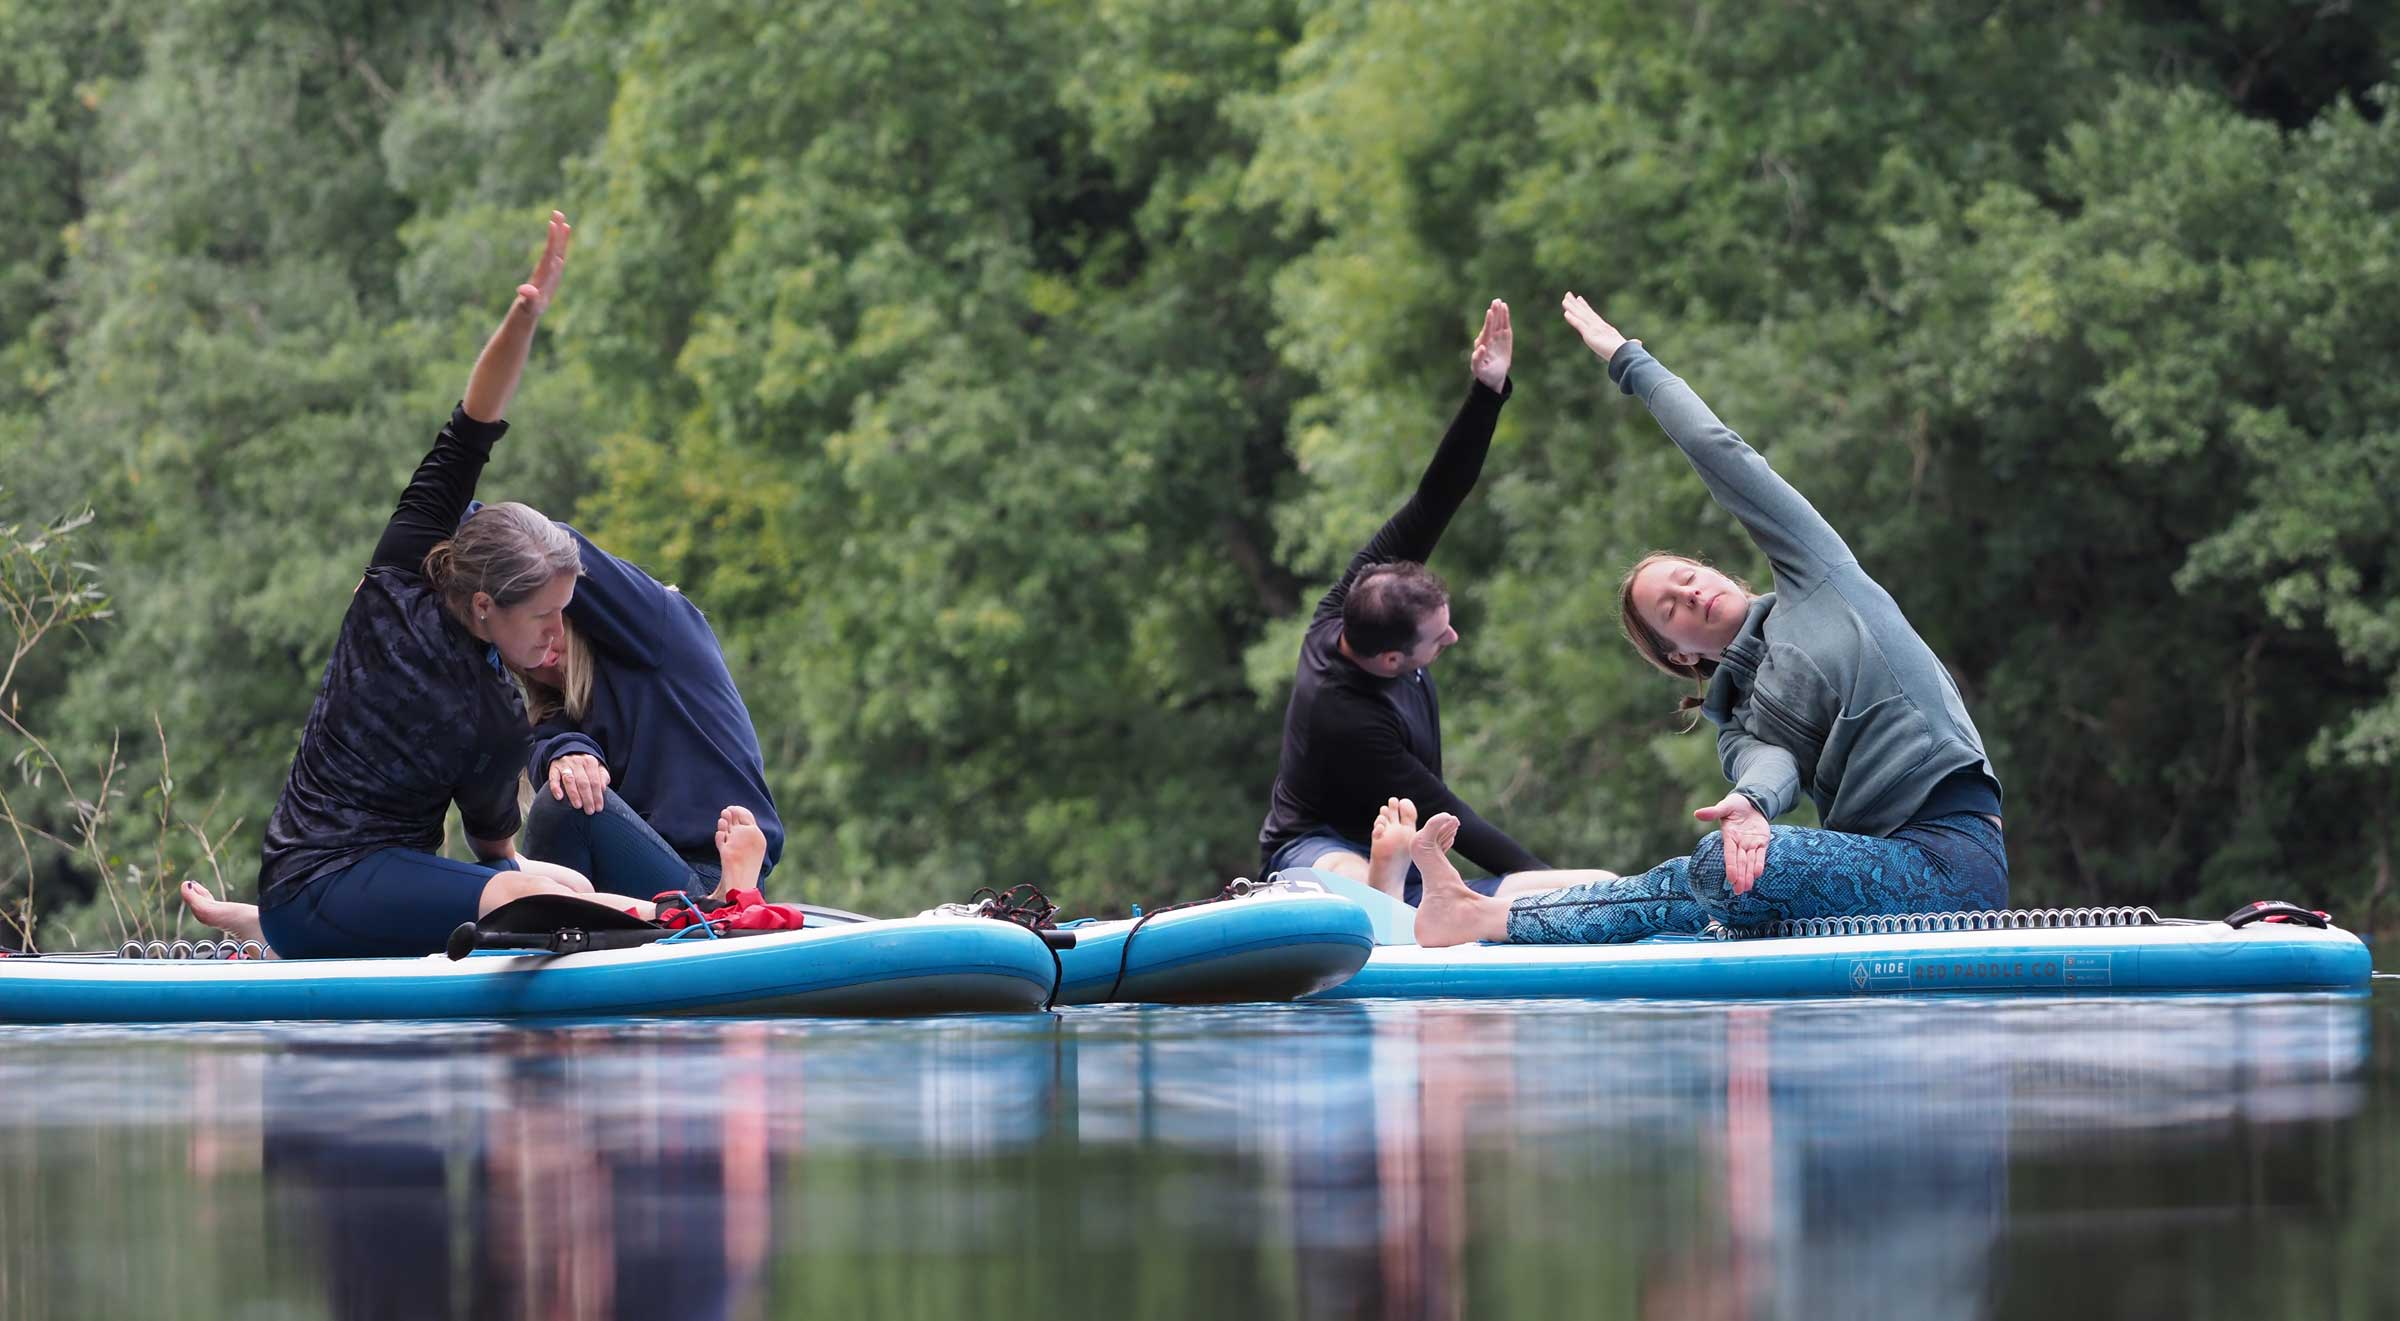 Paddleboarding Yoga Sessions on the River Wye